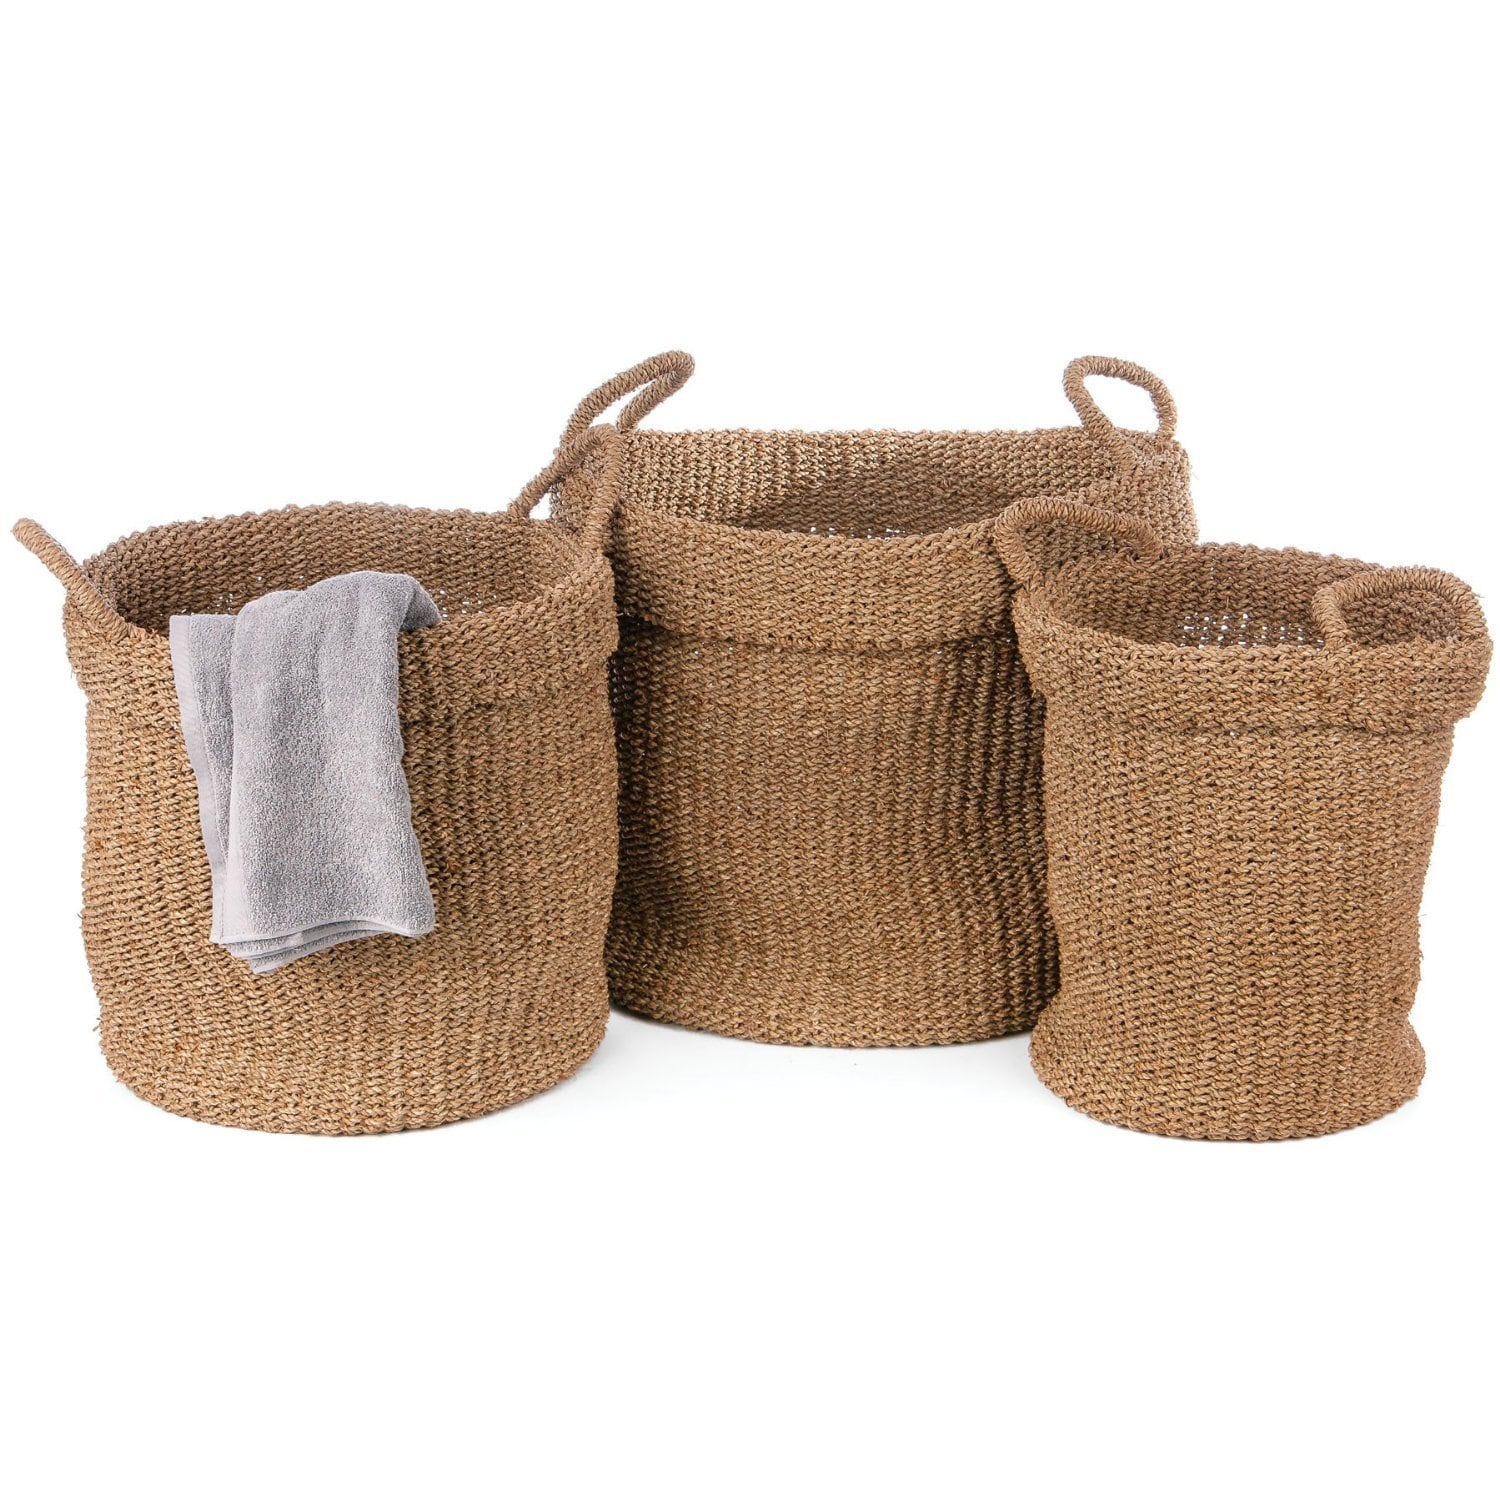 Pyper Marketing Vivian Brown Seagrass Storage Baskets (Set Of 3)   Free  Shipping Today   Overstock.com   19516069